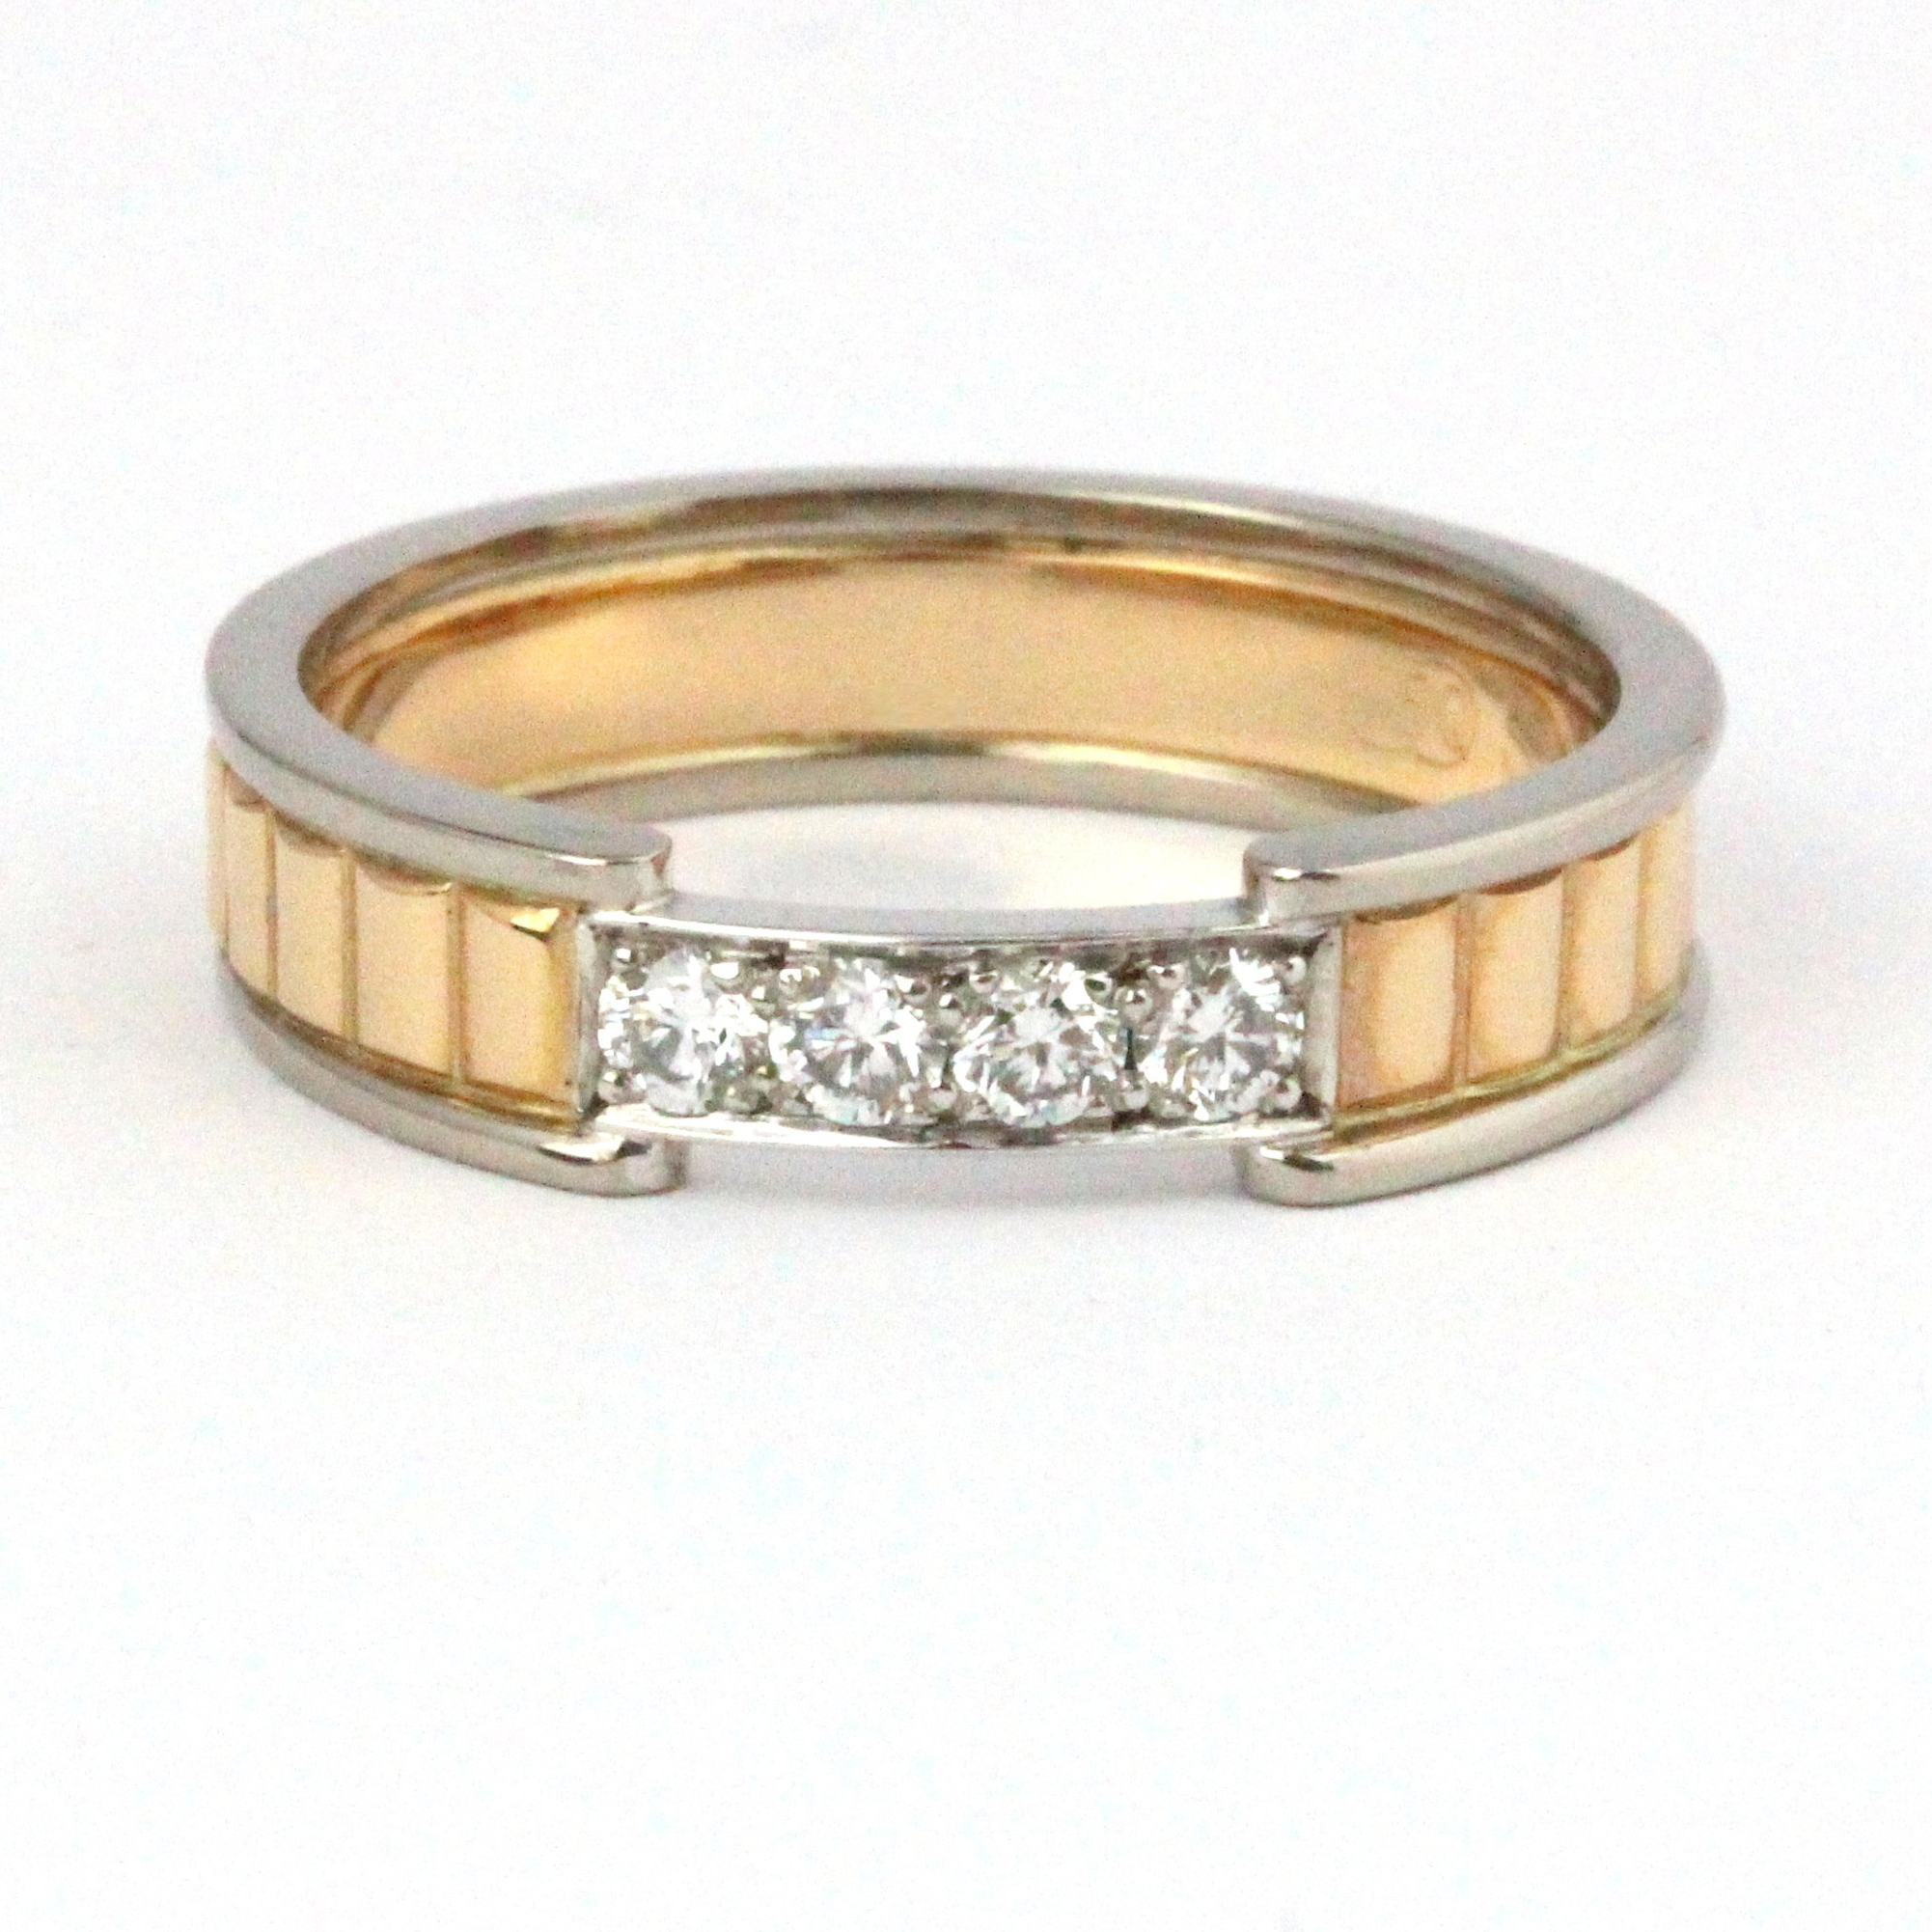 Rose and white gold ring set with diamonds.